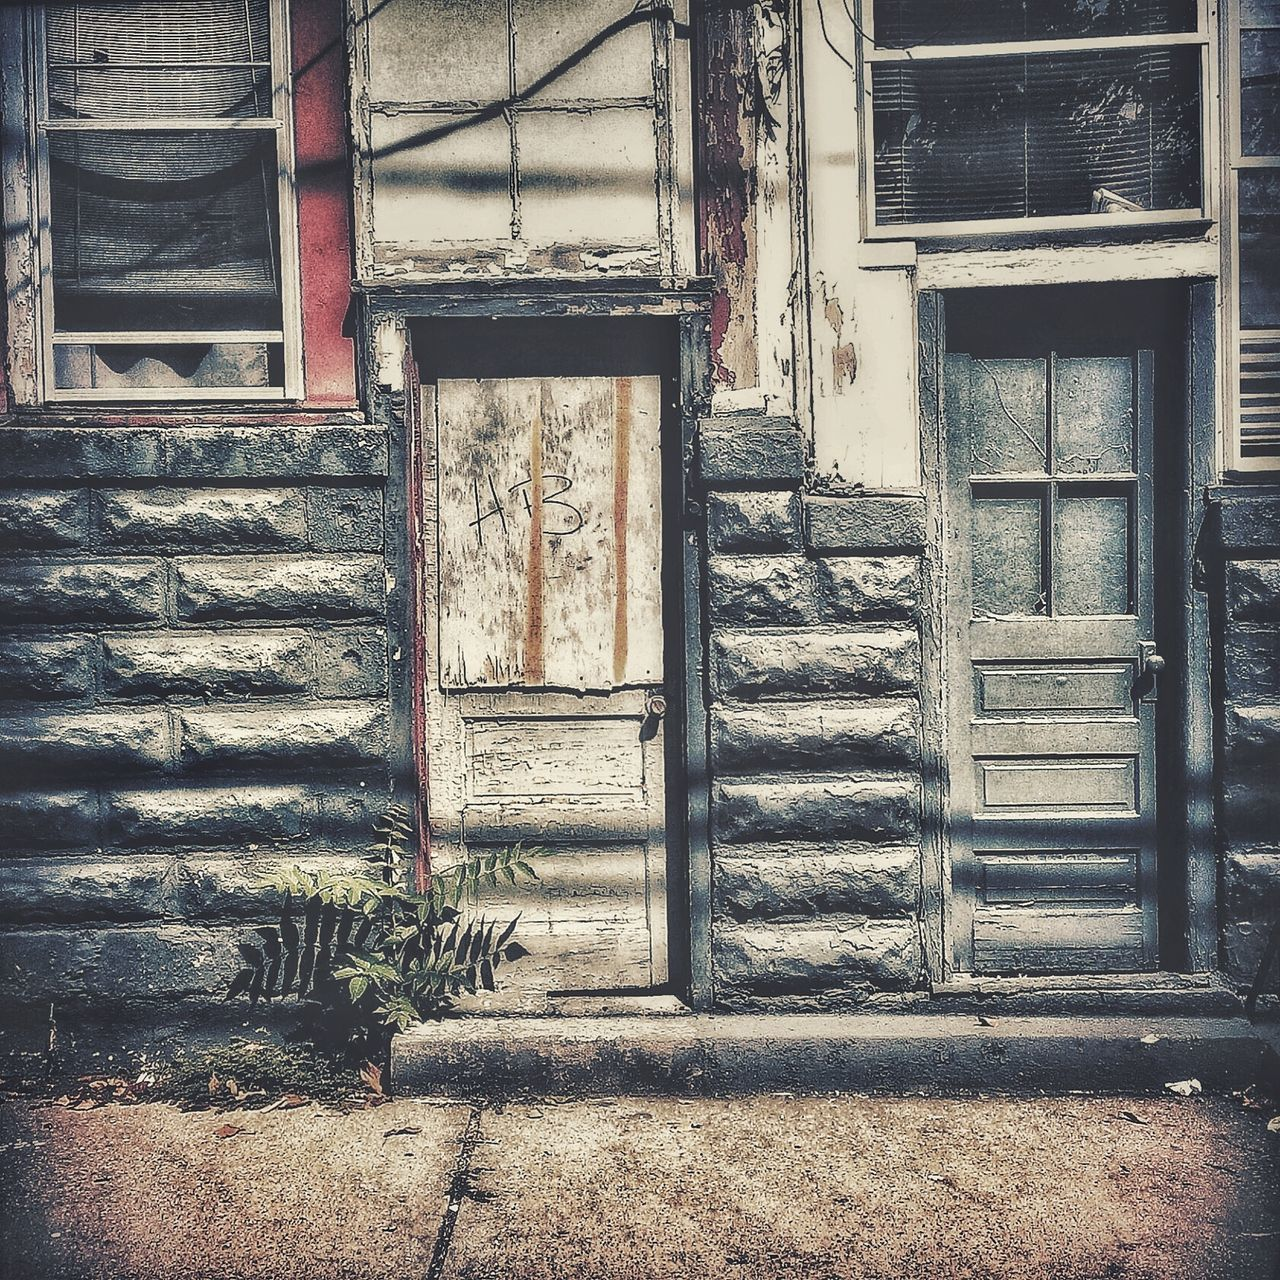 Building Exterior Decayed Beauty Abandoned Buildings Doors Urbexphotography Deterioration Weathered AMPt - Street Abandoned Doorsandwindows Creepy Atmoshpere Window EyeEm_abandonment Abandoned & Derelict Abandoned Places Textured  Tresspassing For Art AMPt - Abandon Textured  Decaying Urban Landscape